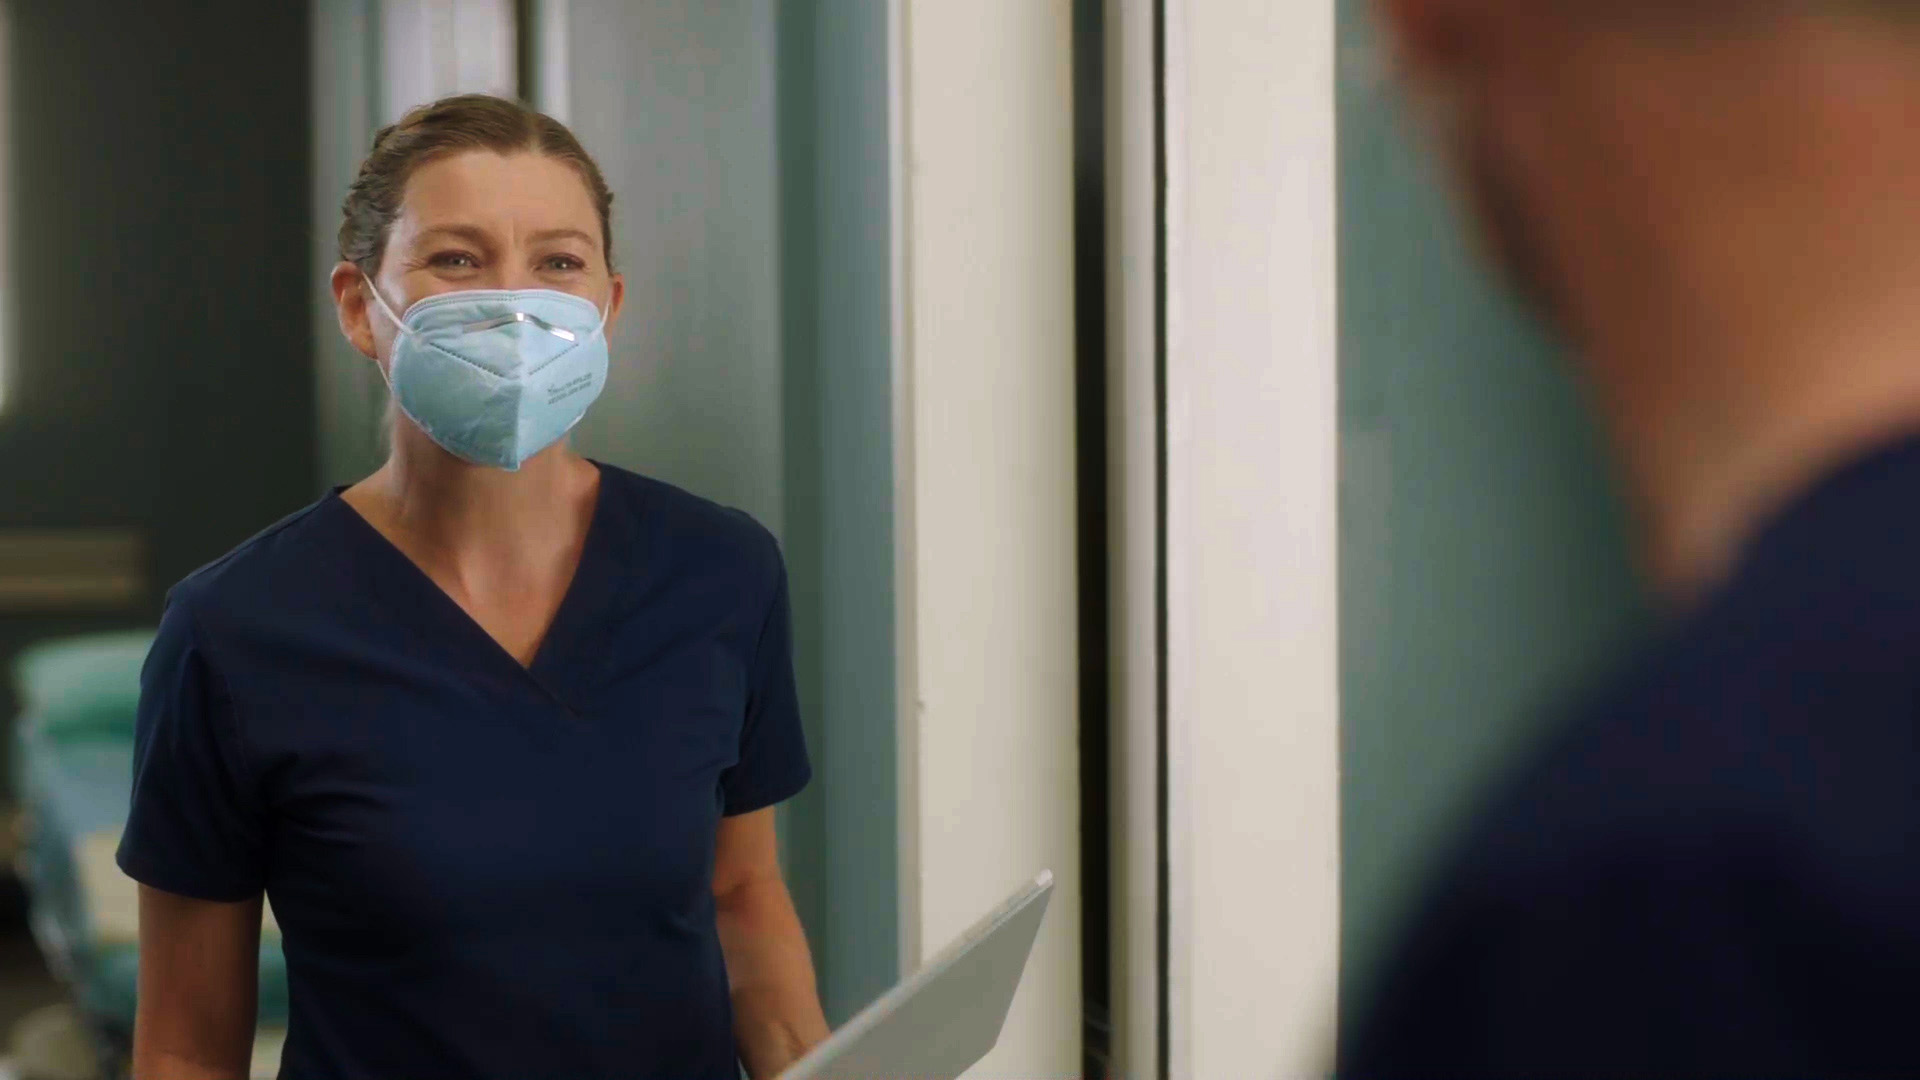 Dr. Meredith Grey is the protagonist of Grey's Anatomy, a pillar in the modern TV era